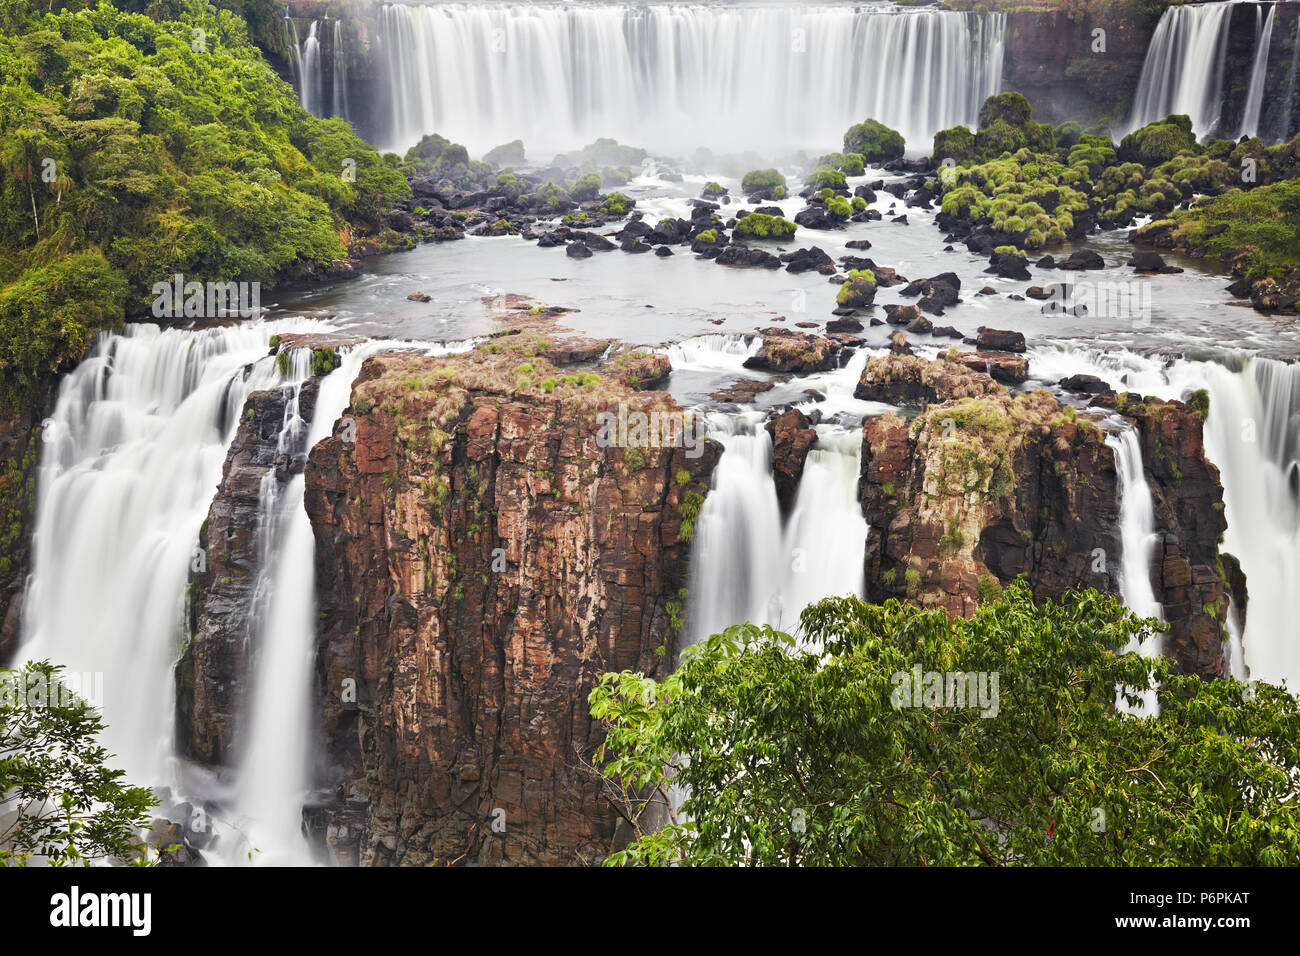 Iguassu Falls, the largest series of waterfalls of the world, located at the Brazilian and Argentinian border, View from Brazilian side - Stock Image